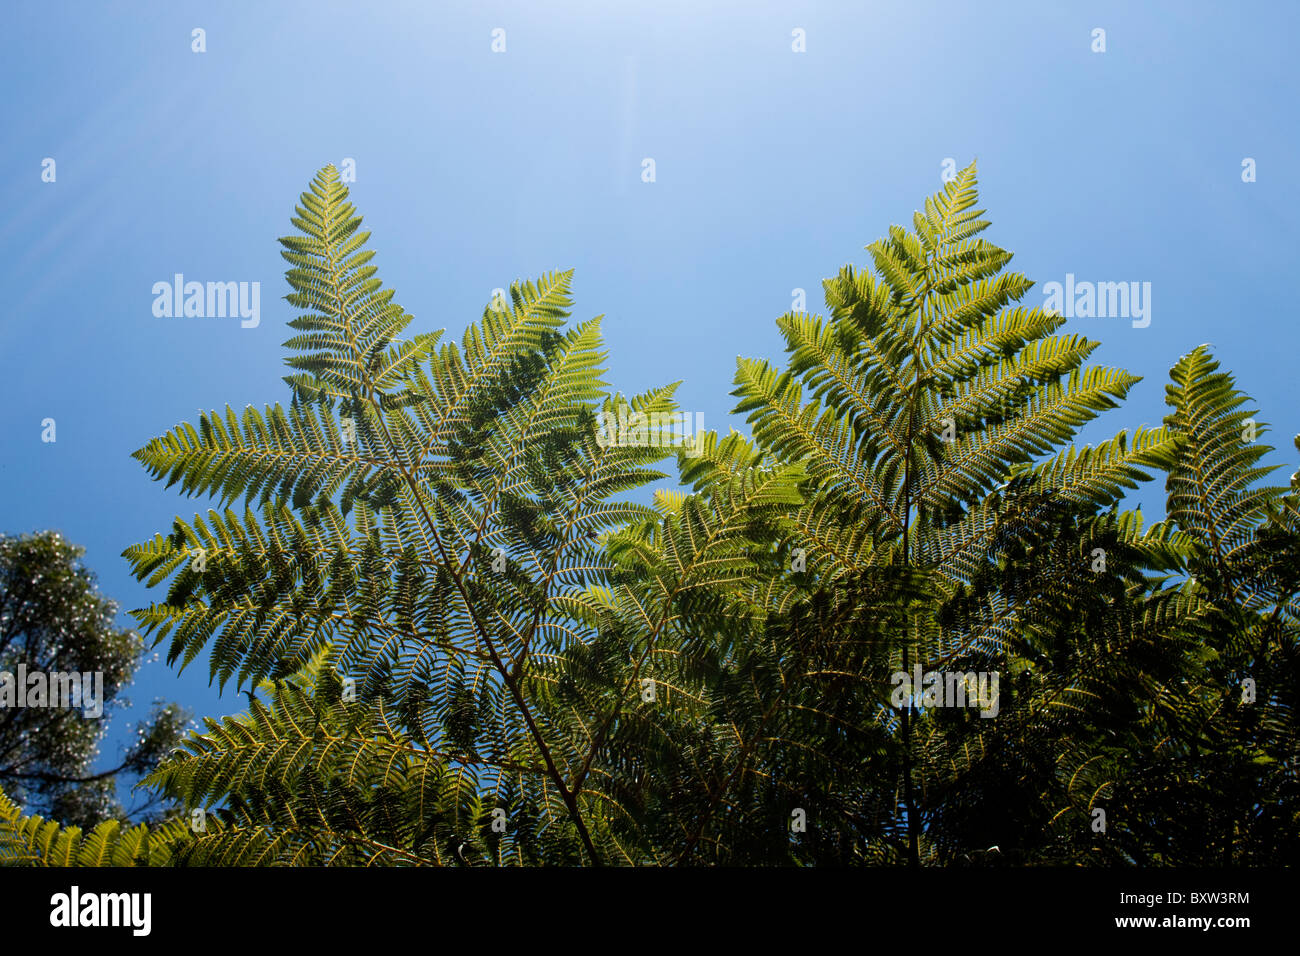 Australia, Victoria, Midday sun shines above tree ferns in coastal forest along Great Ocean Road Stock Photo